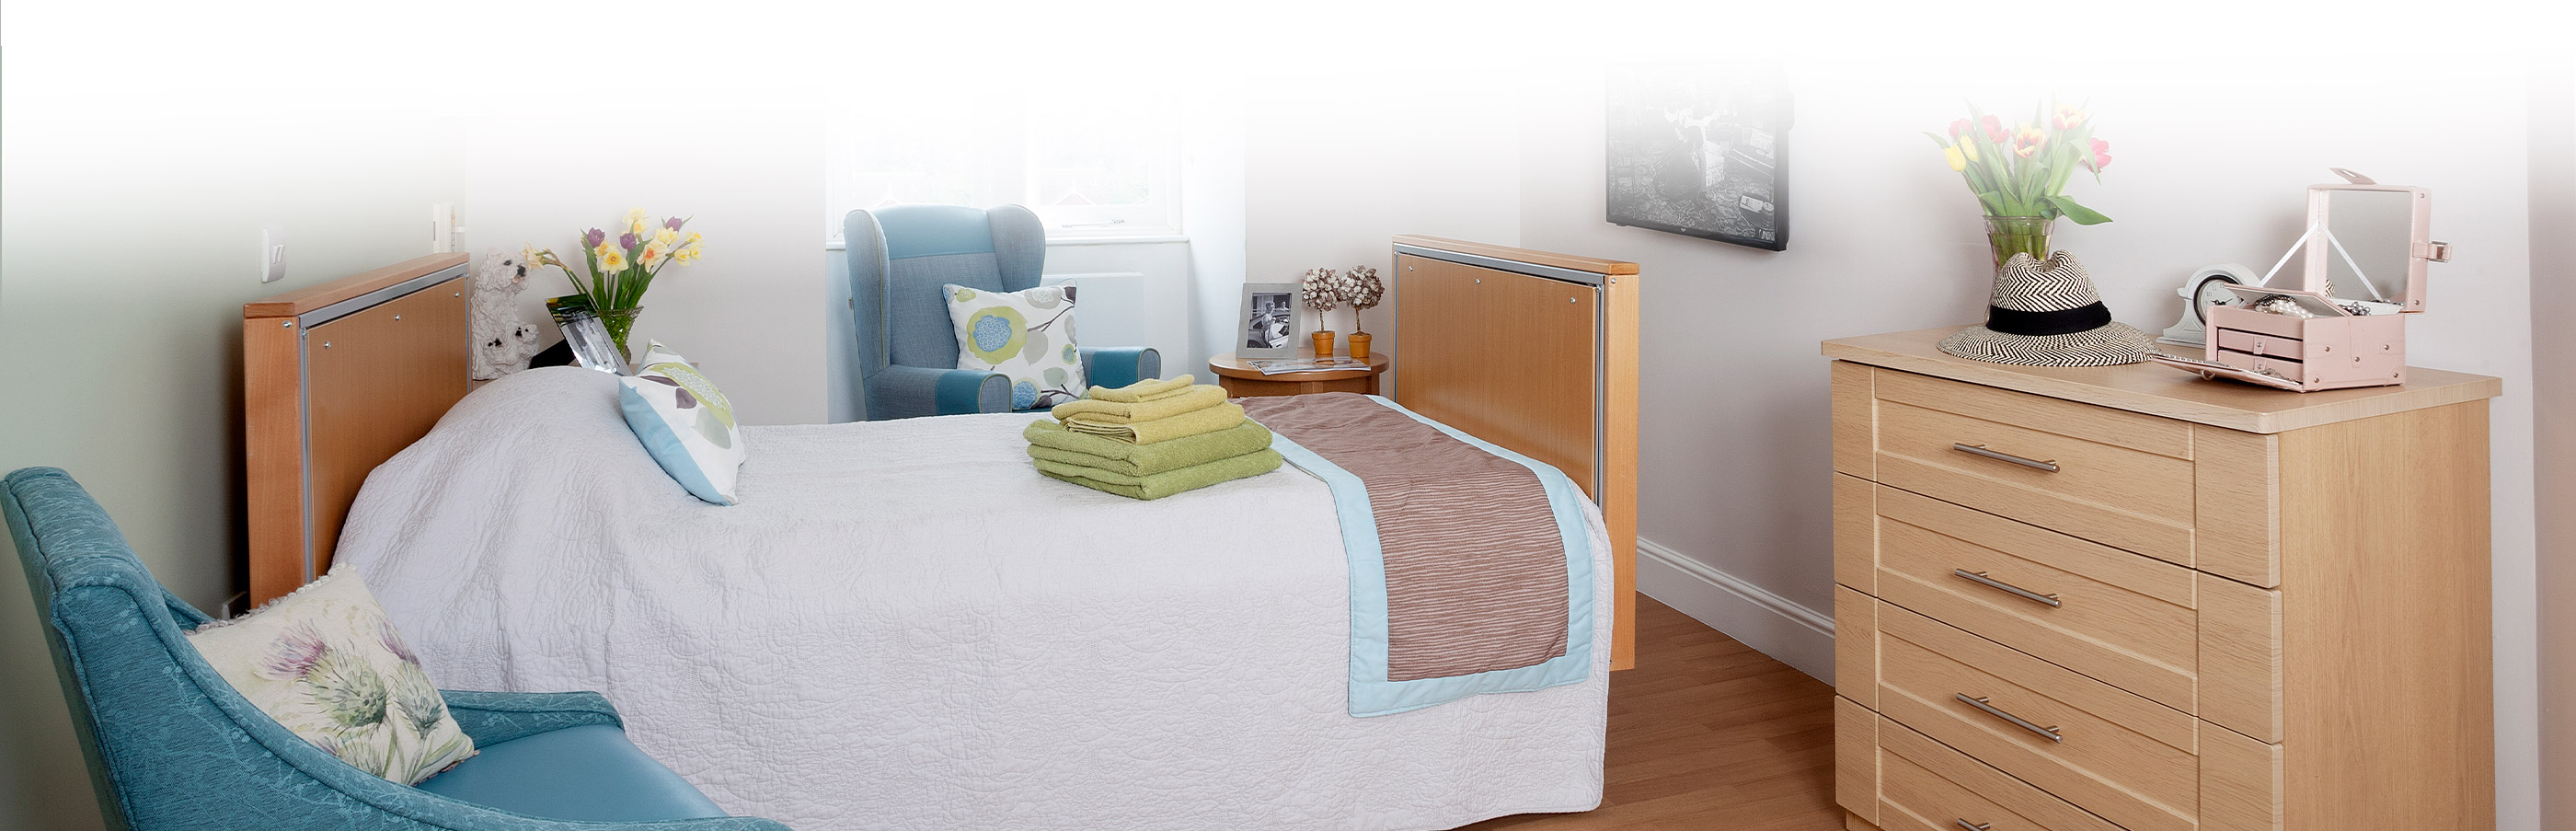 bedroom with bed, tv and stack of draws at Hamilton Nursing Home